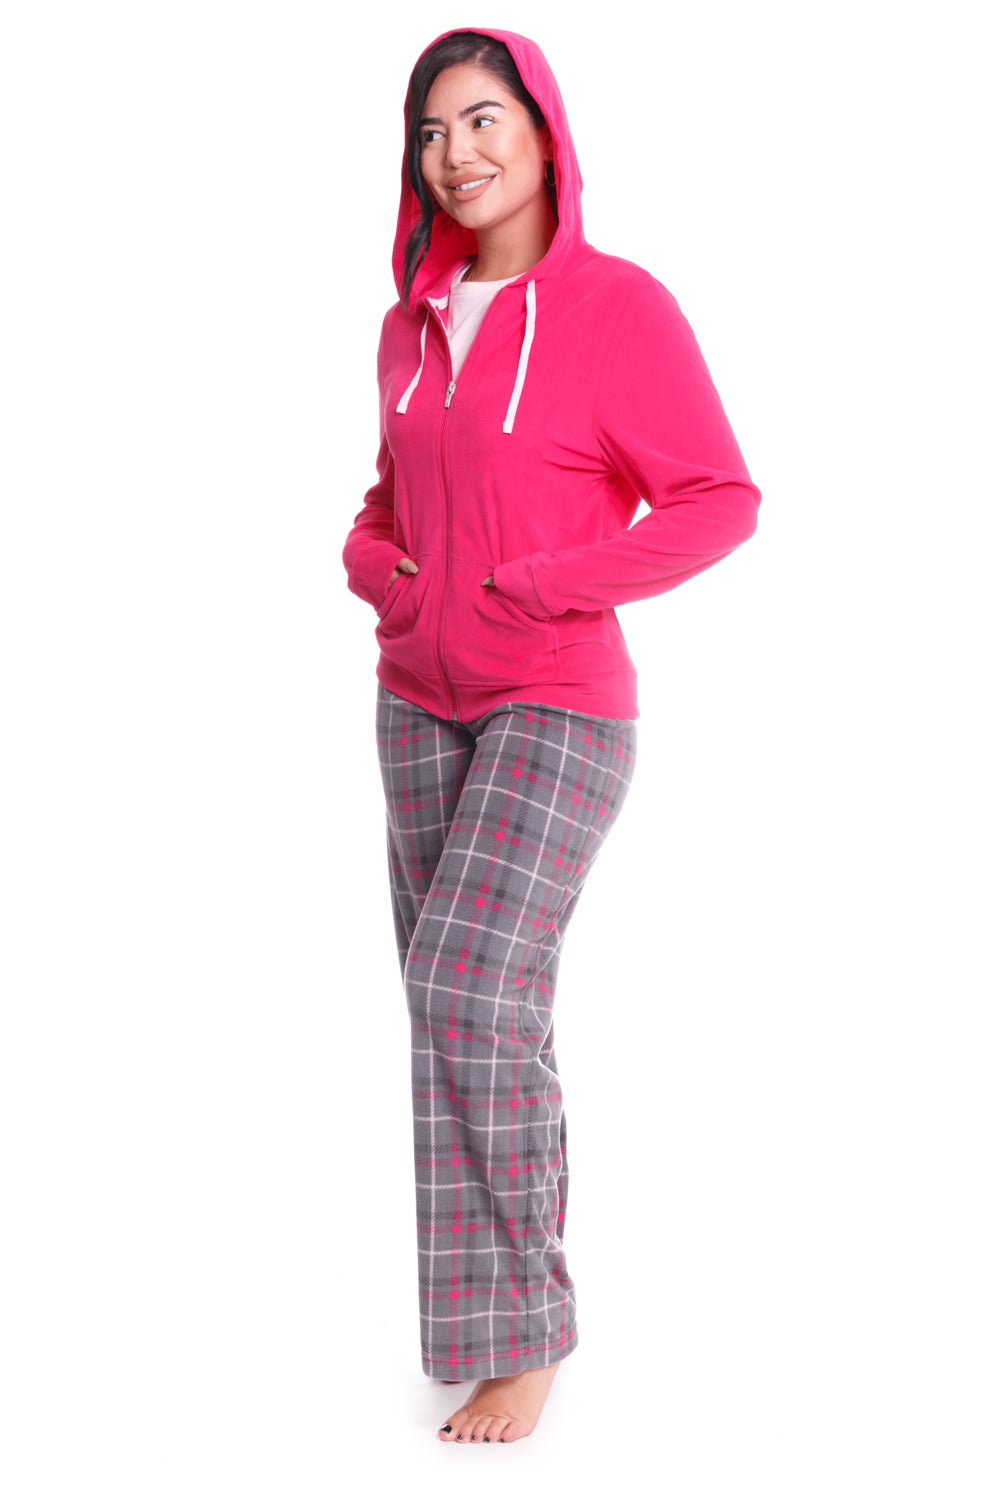 Bittersweet Pink Plaid 3 Piece Pajama Set - CozyAndCurious